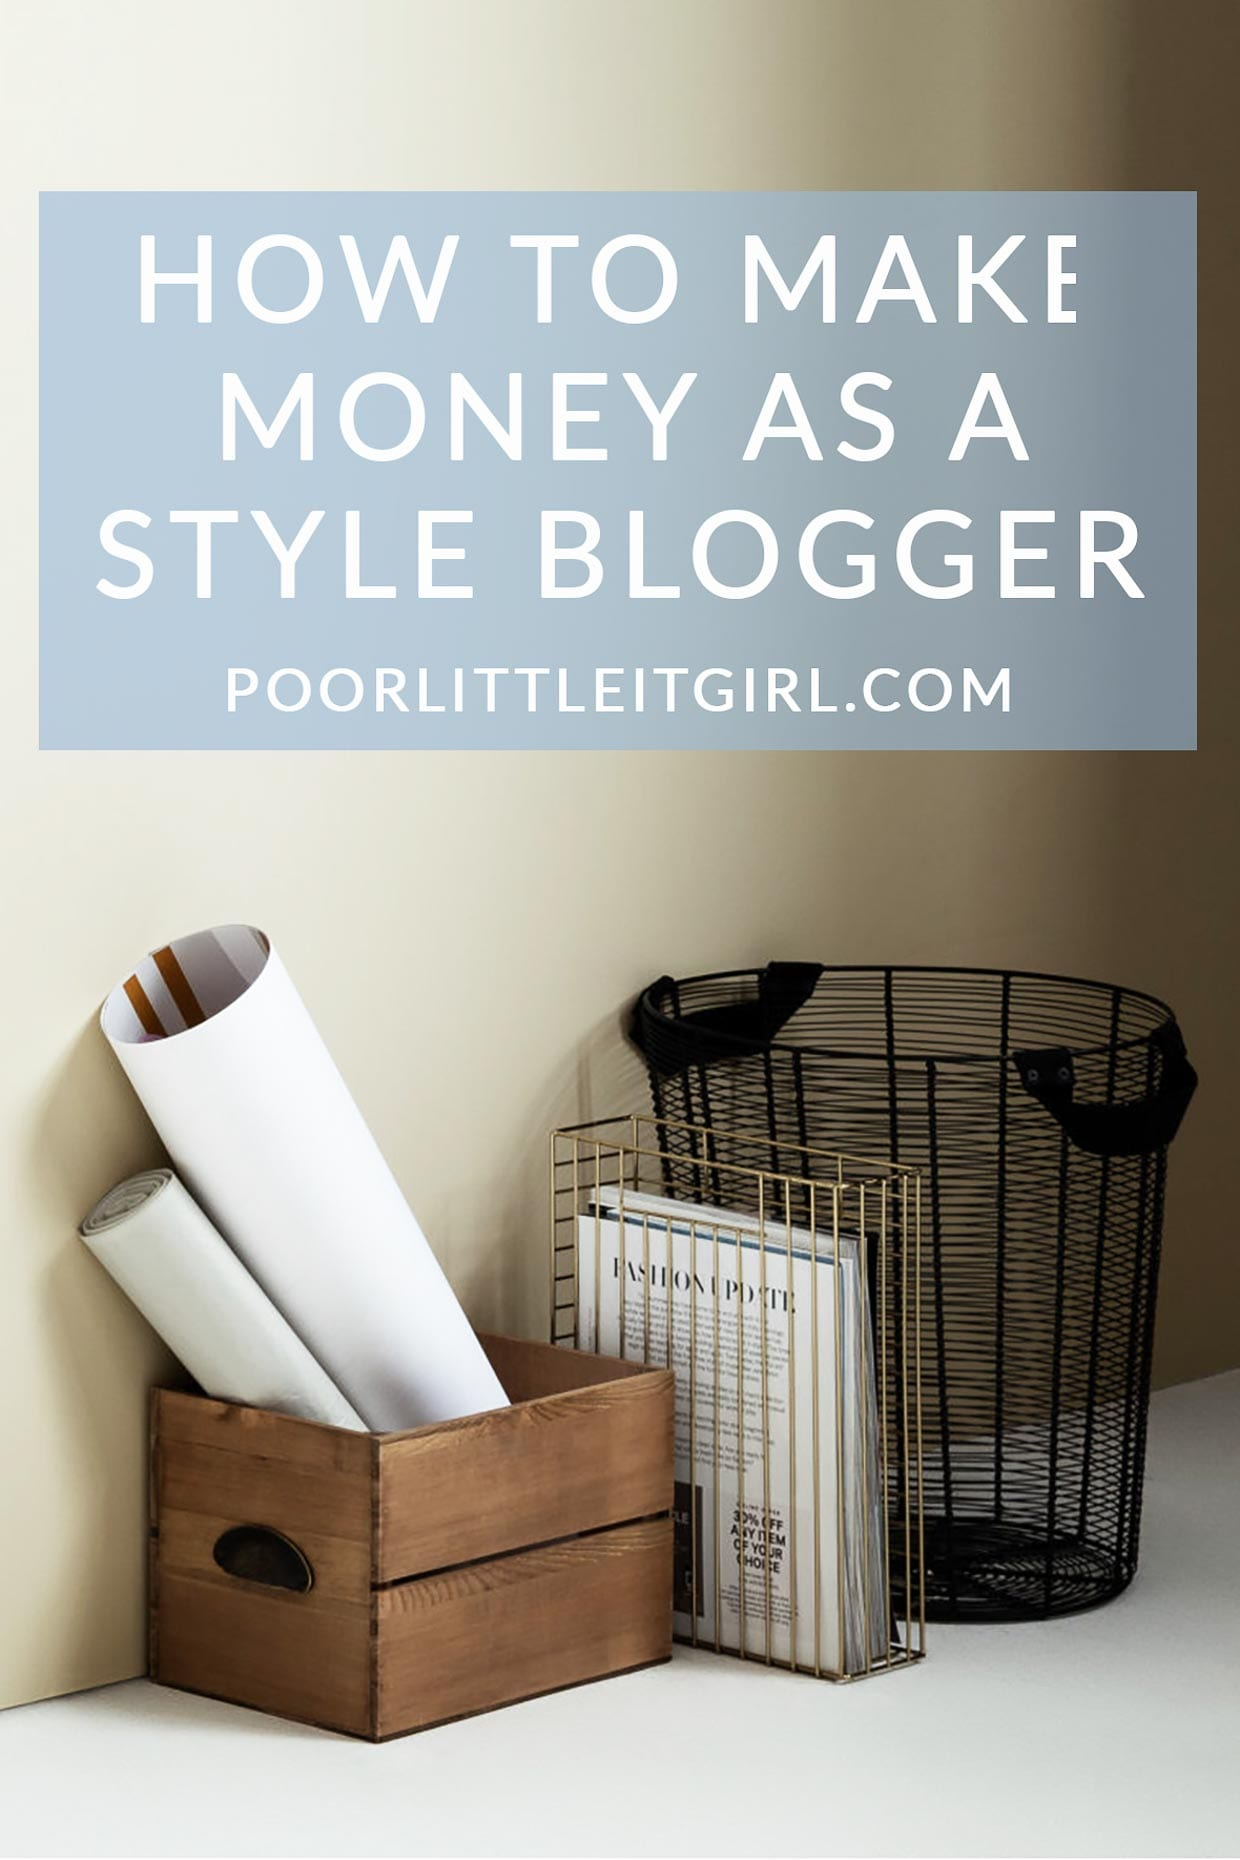 How To Make Money As A Style Blogger - Poor Little It Girl